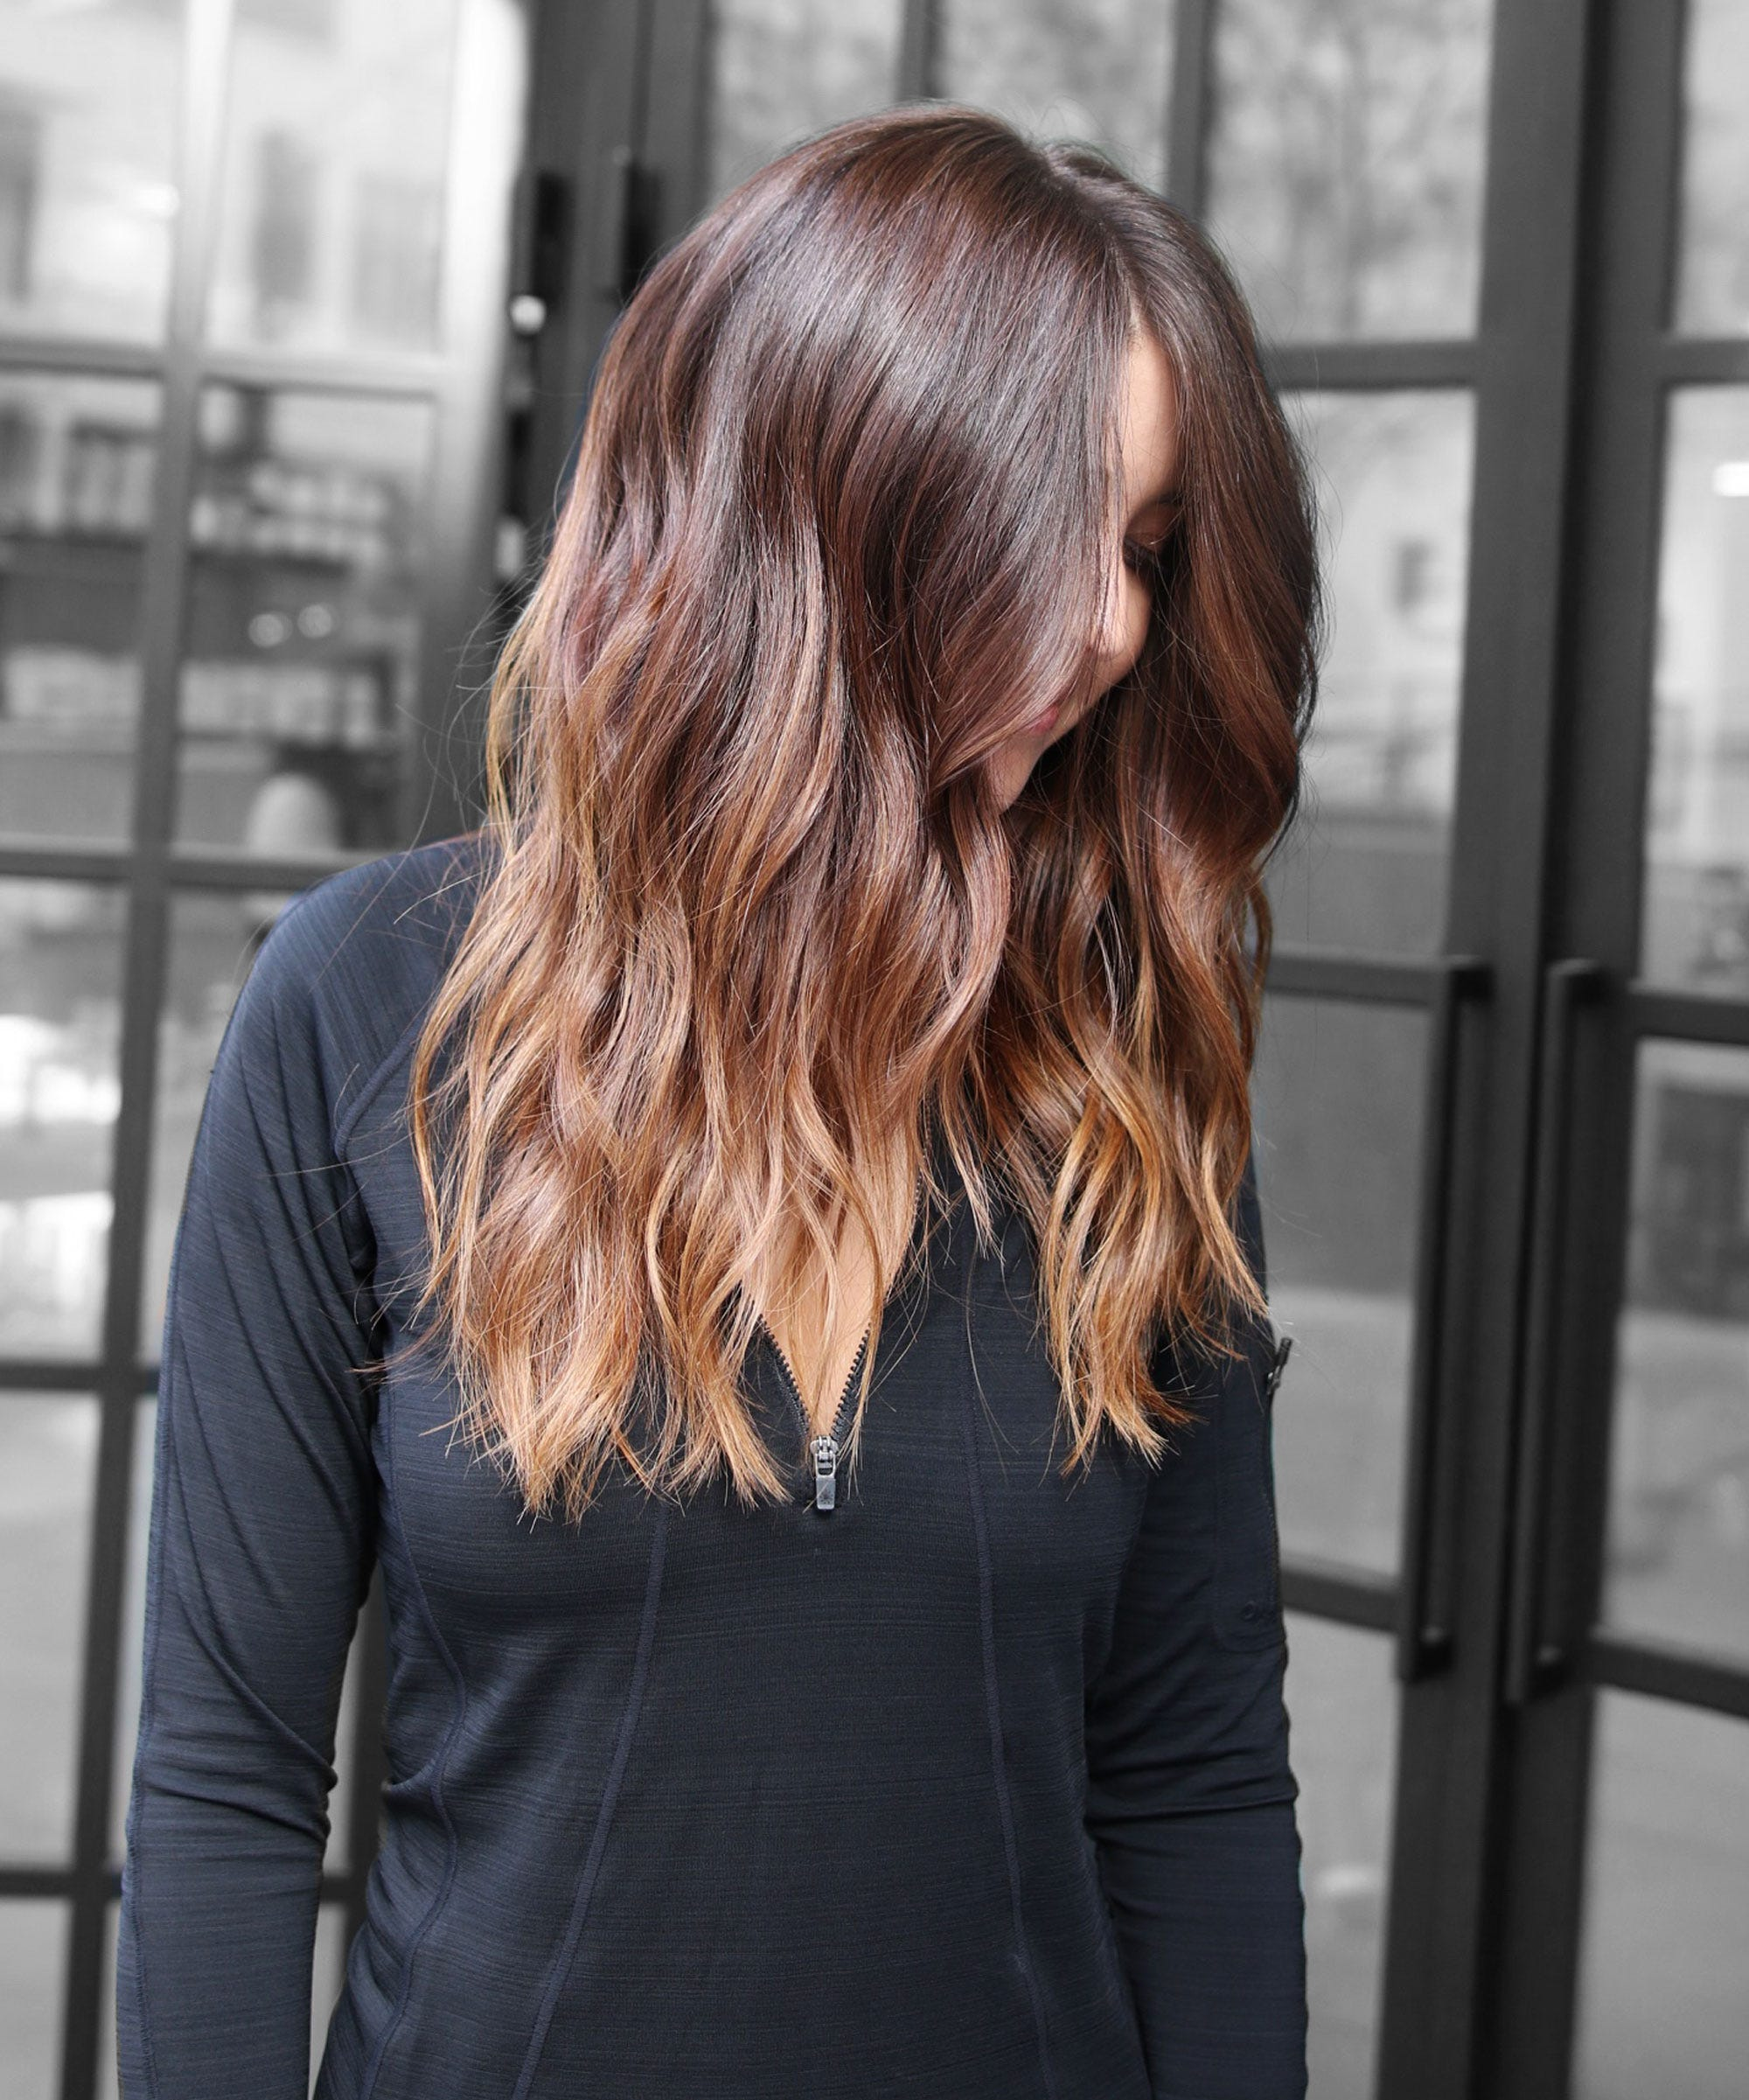 Hair Color Trends 2018 - Winter Hairstyles